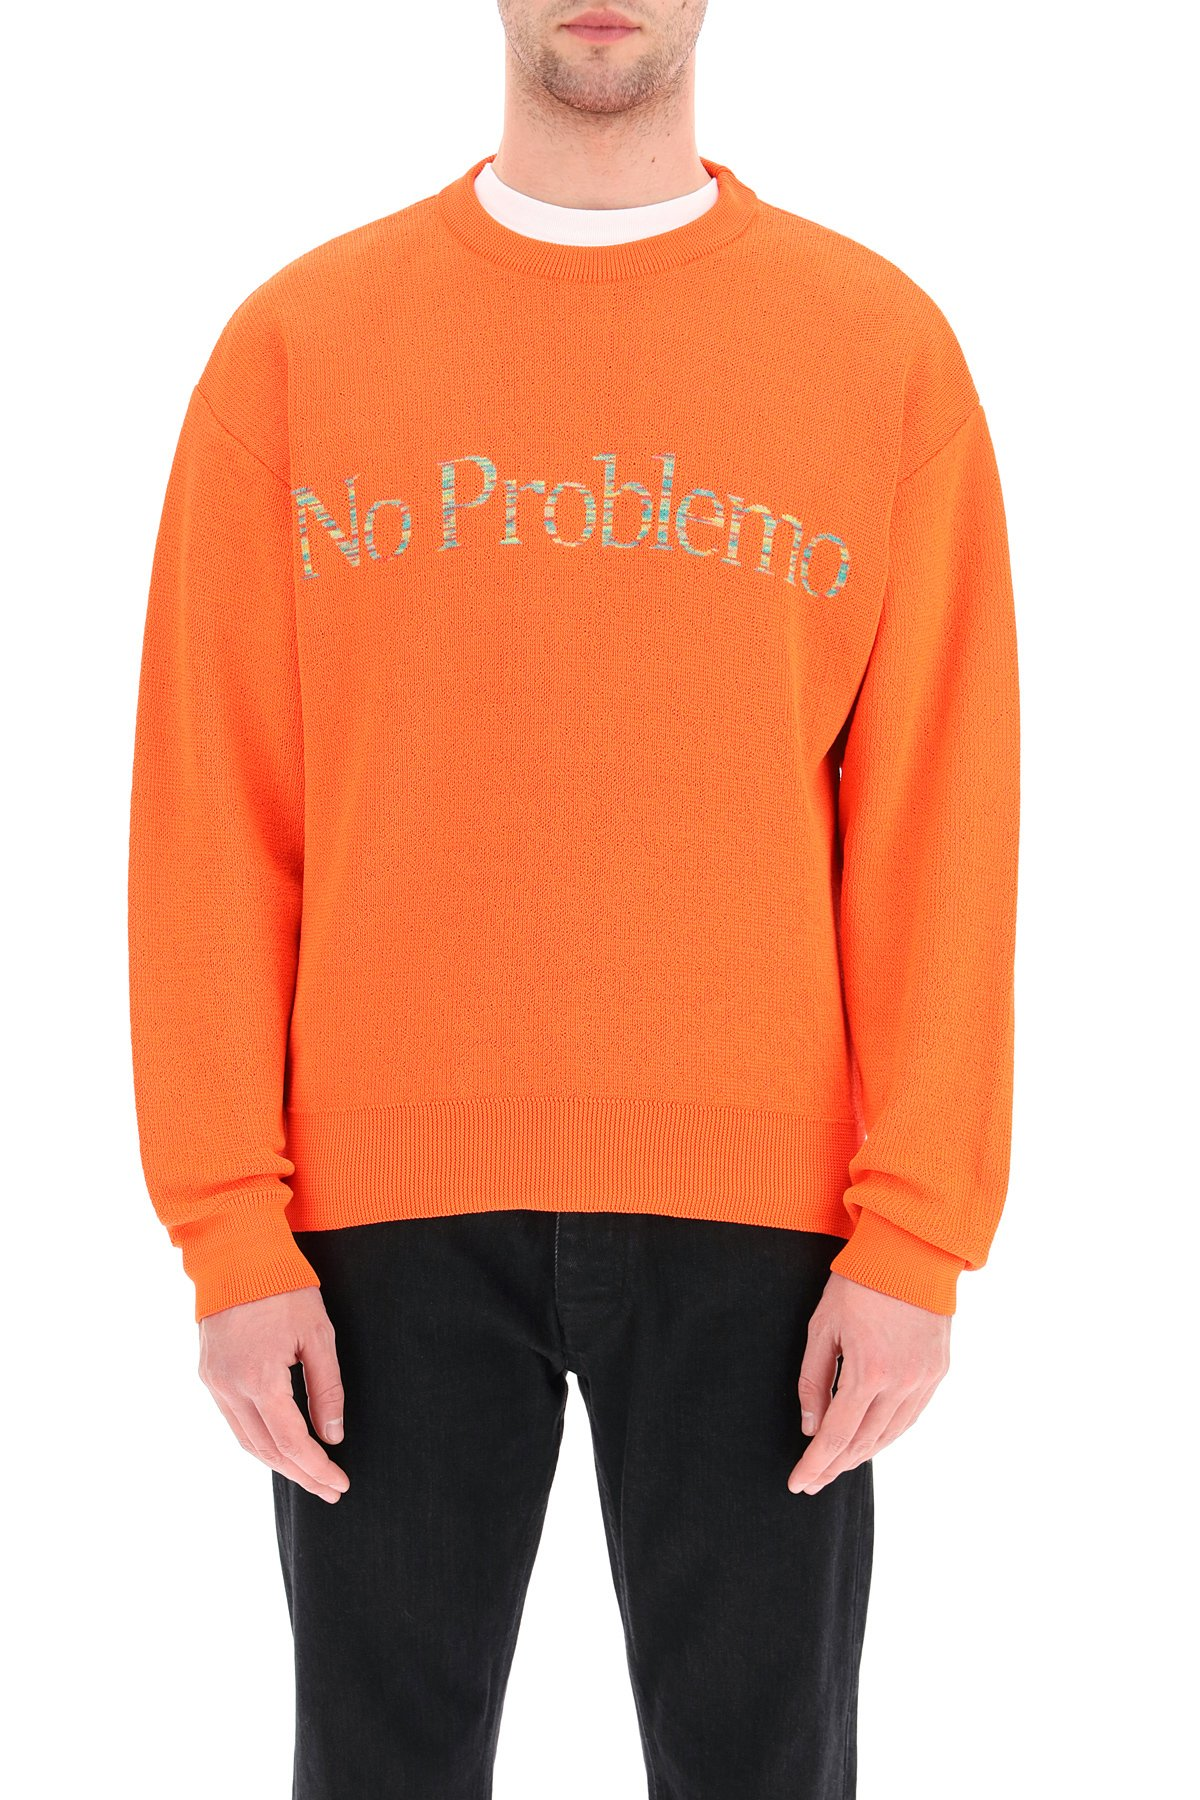 Aries pullover no problemo space dye